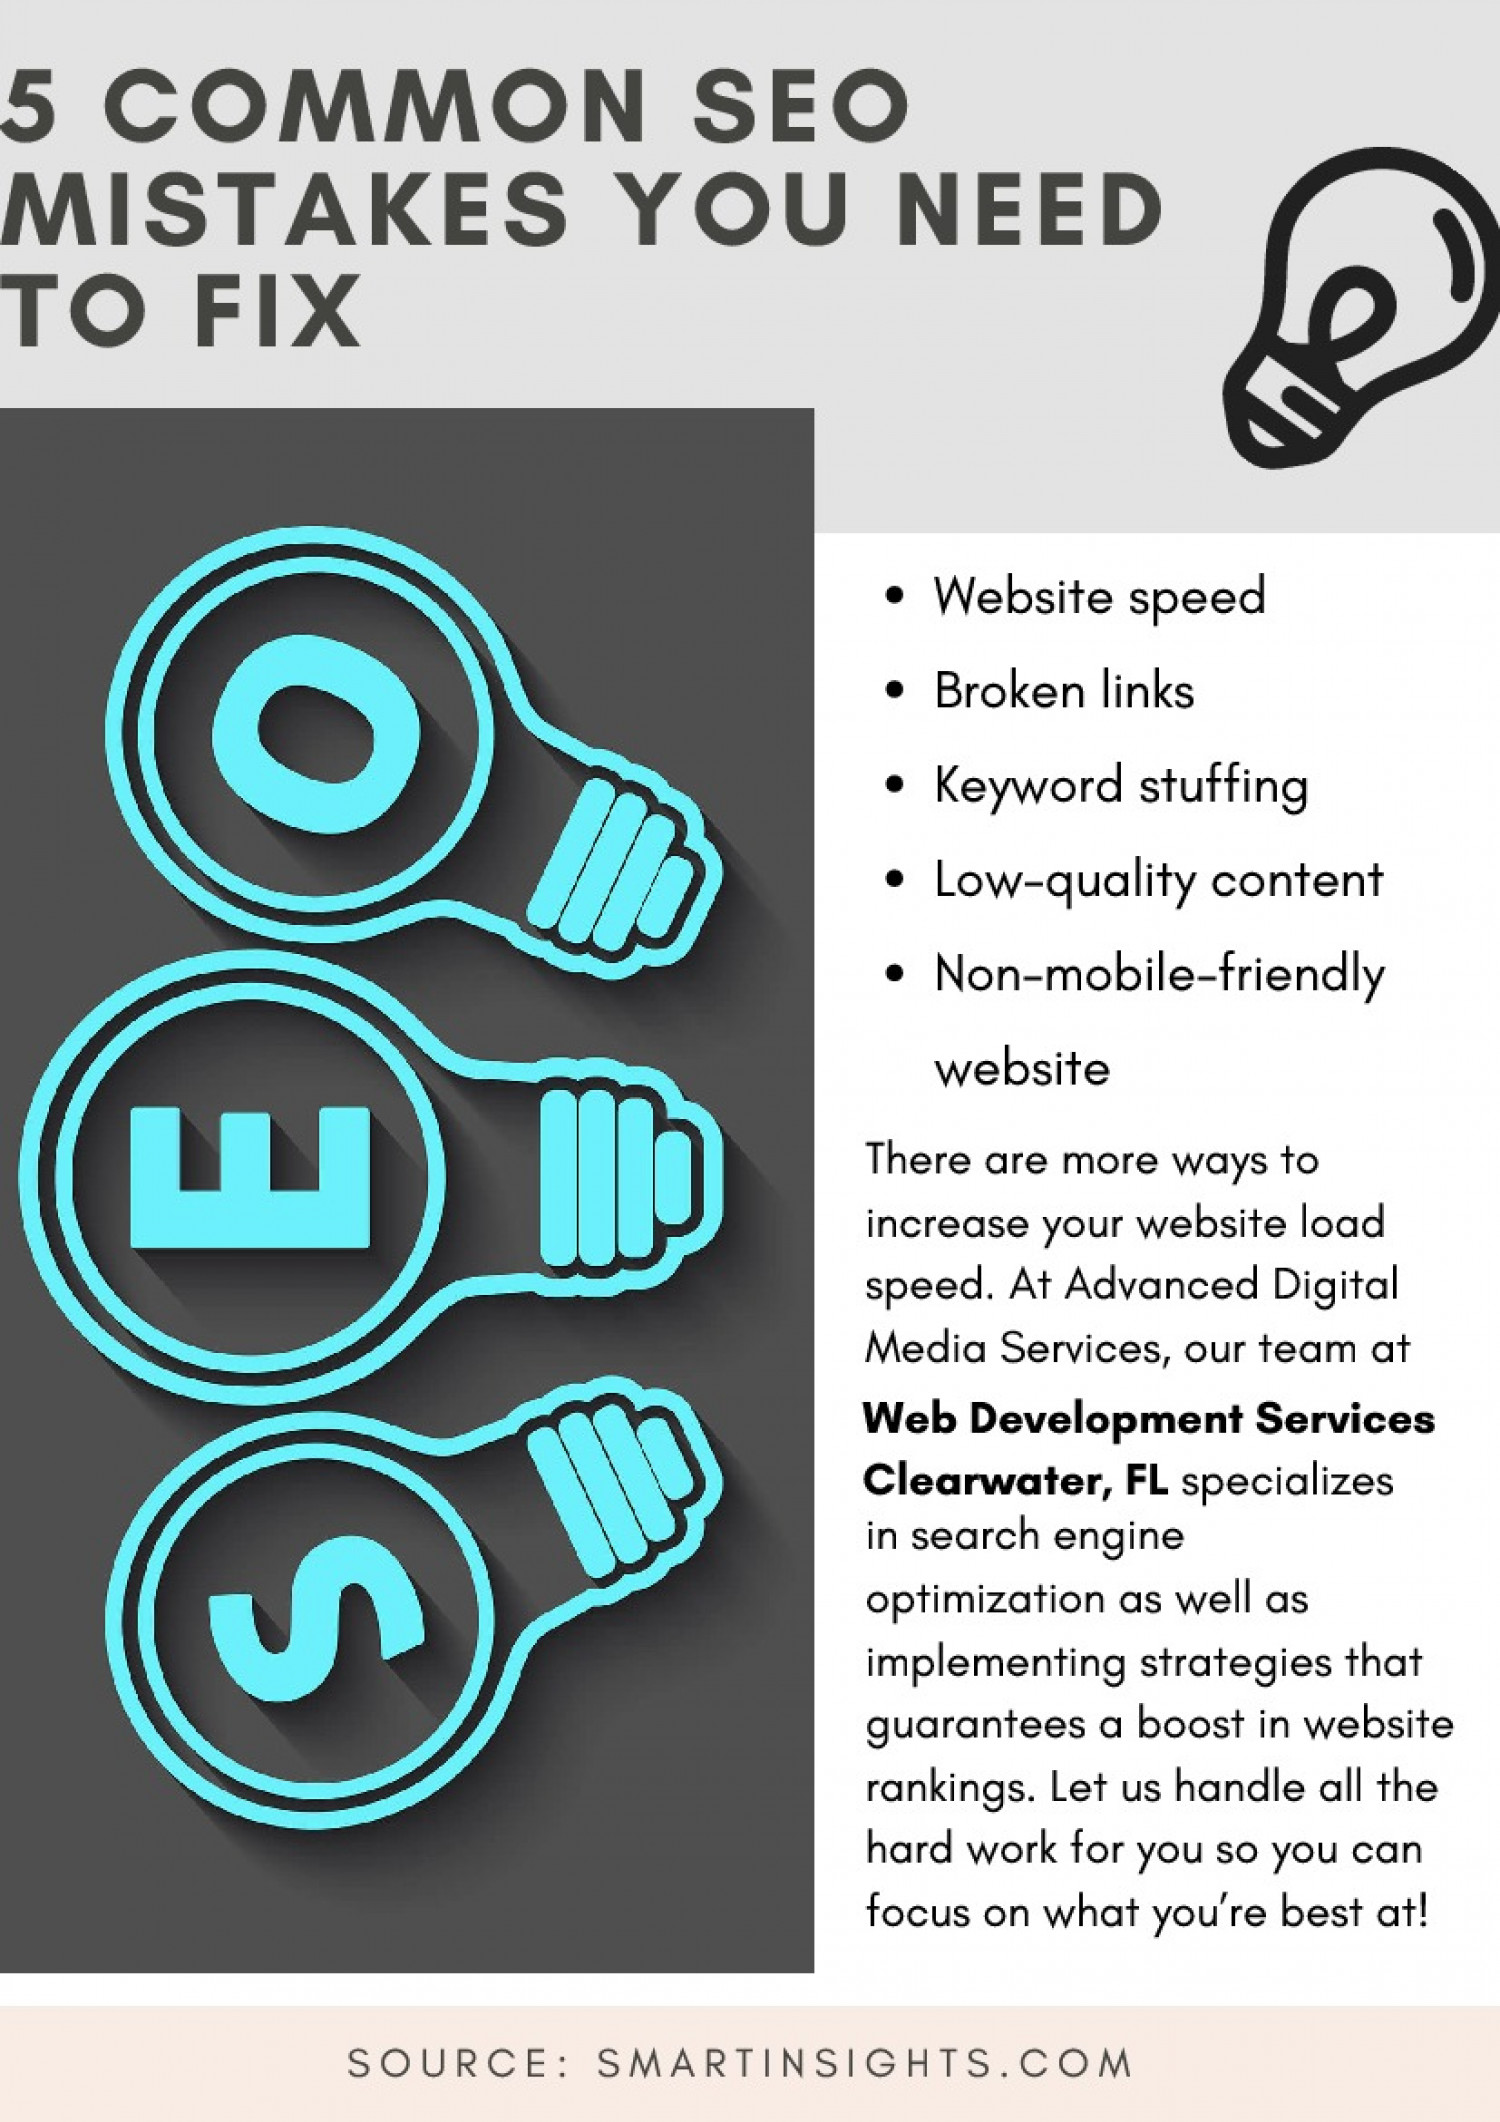 5 Common SEO Mistakes You Need To Fix Infographic